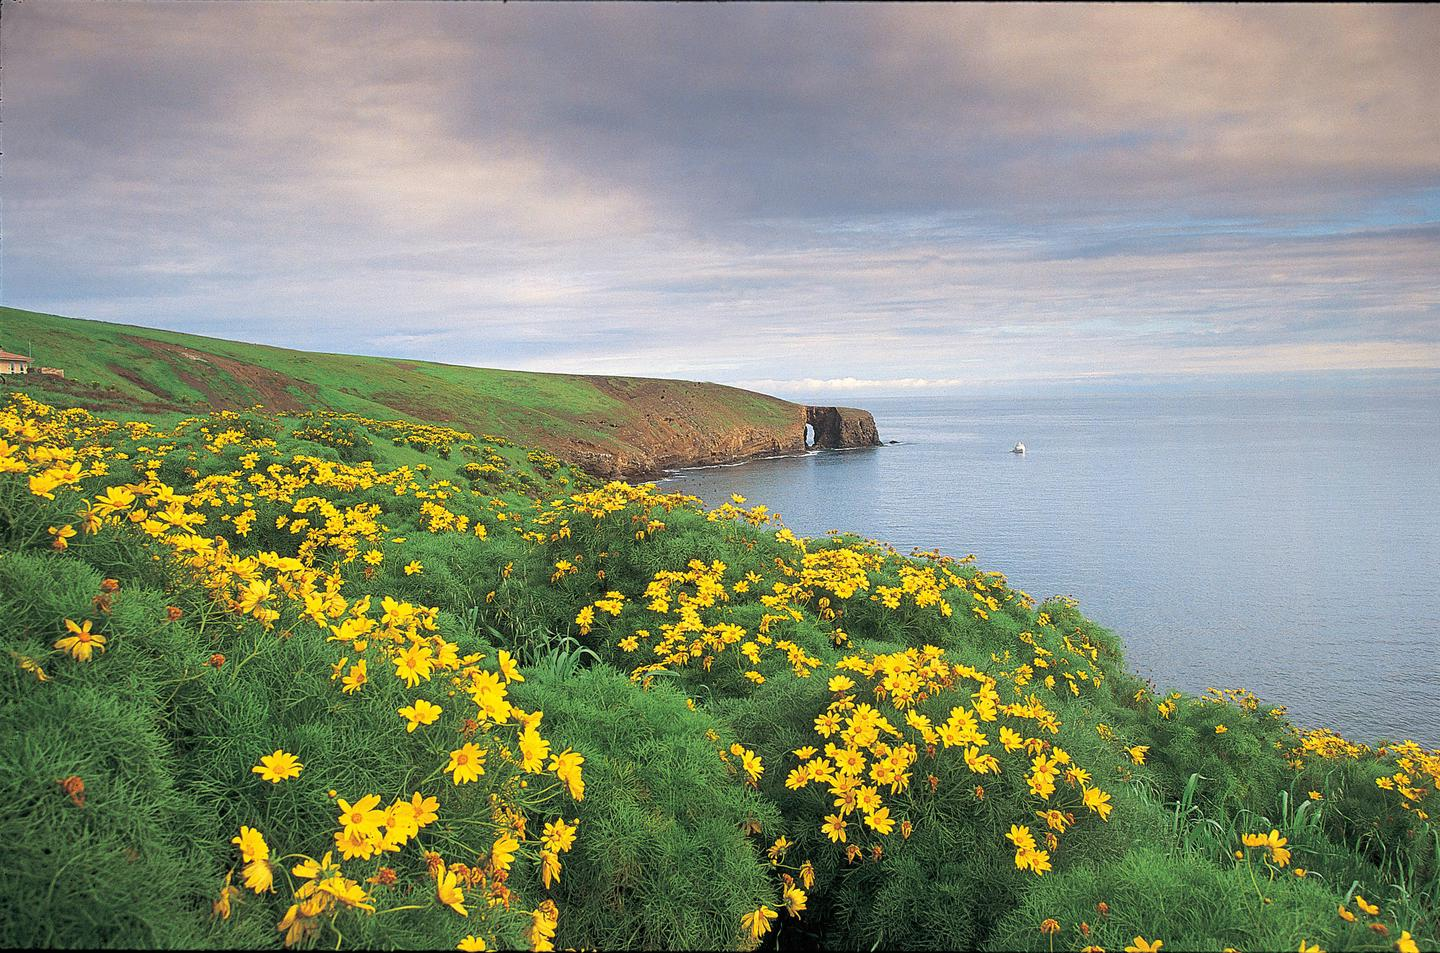 Arch Point by Tim HaufArch Point, Santa Barbara Island: With winter rains, the coreopsis emerges from summer's dormancy with light green foliage and bright yellow daisy-like flowers